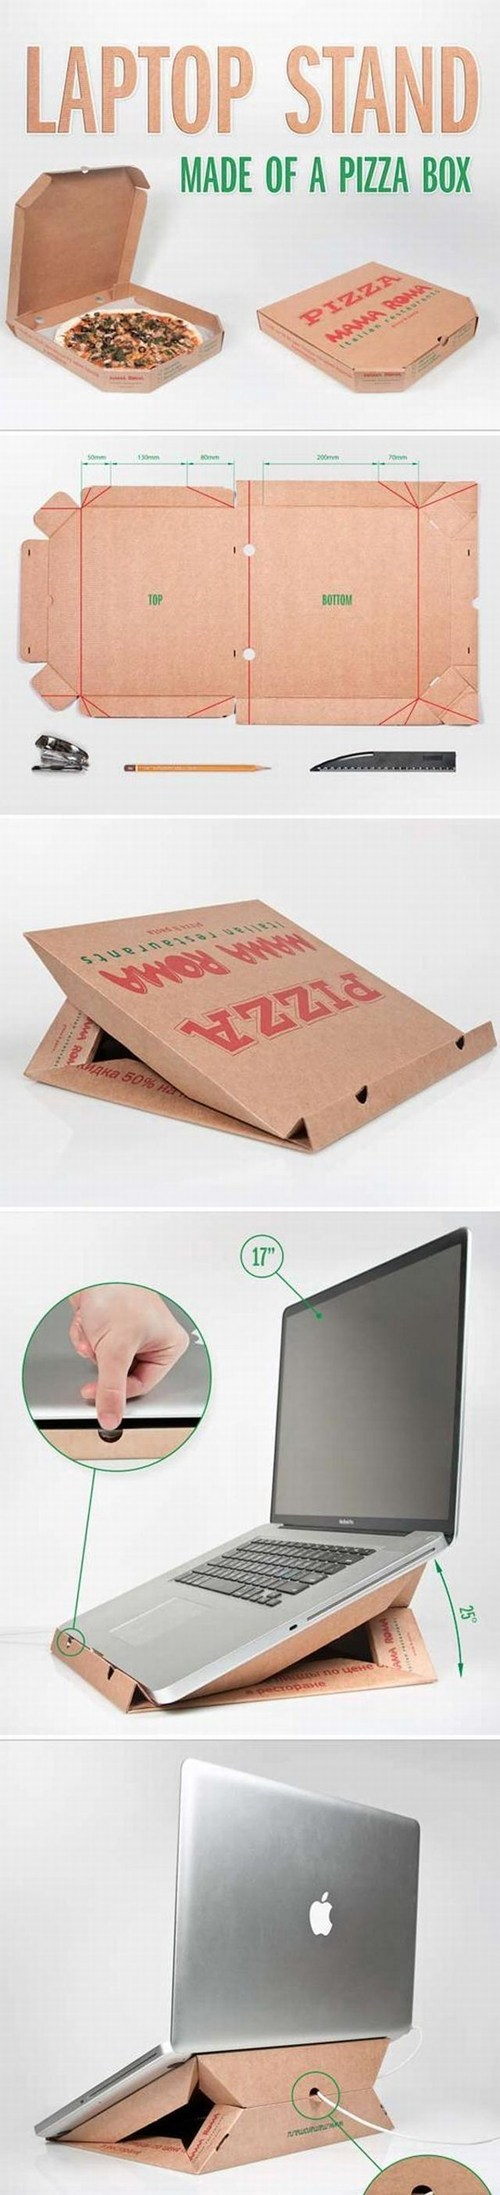 laptops,pizza boxes,DIY